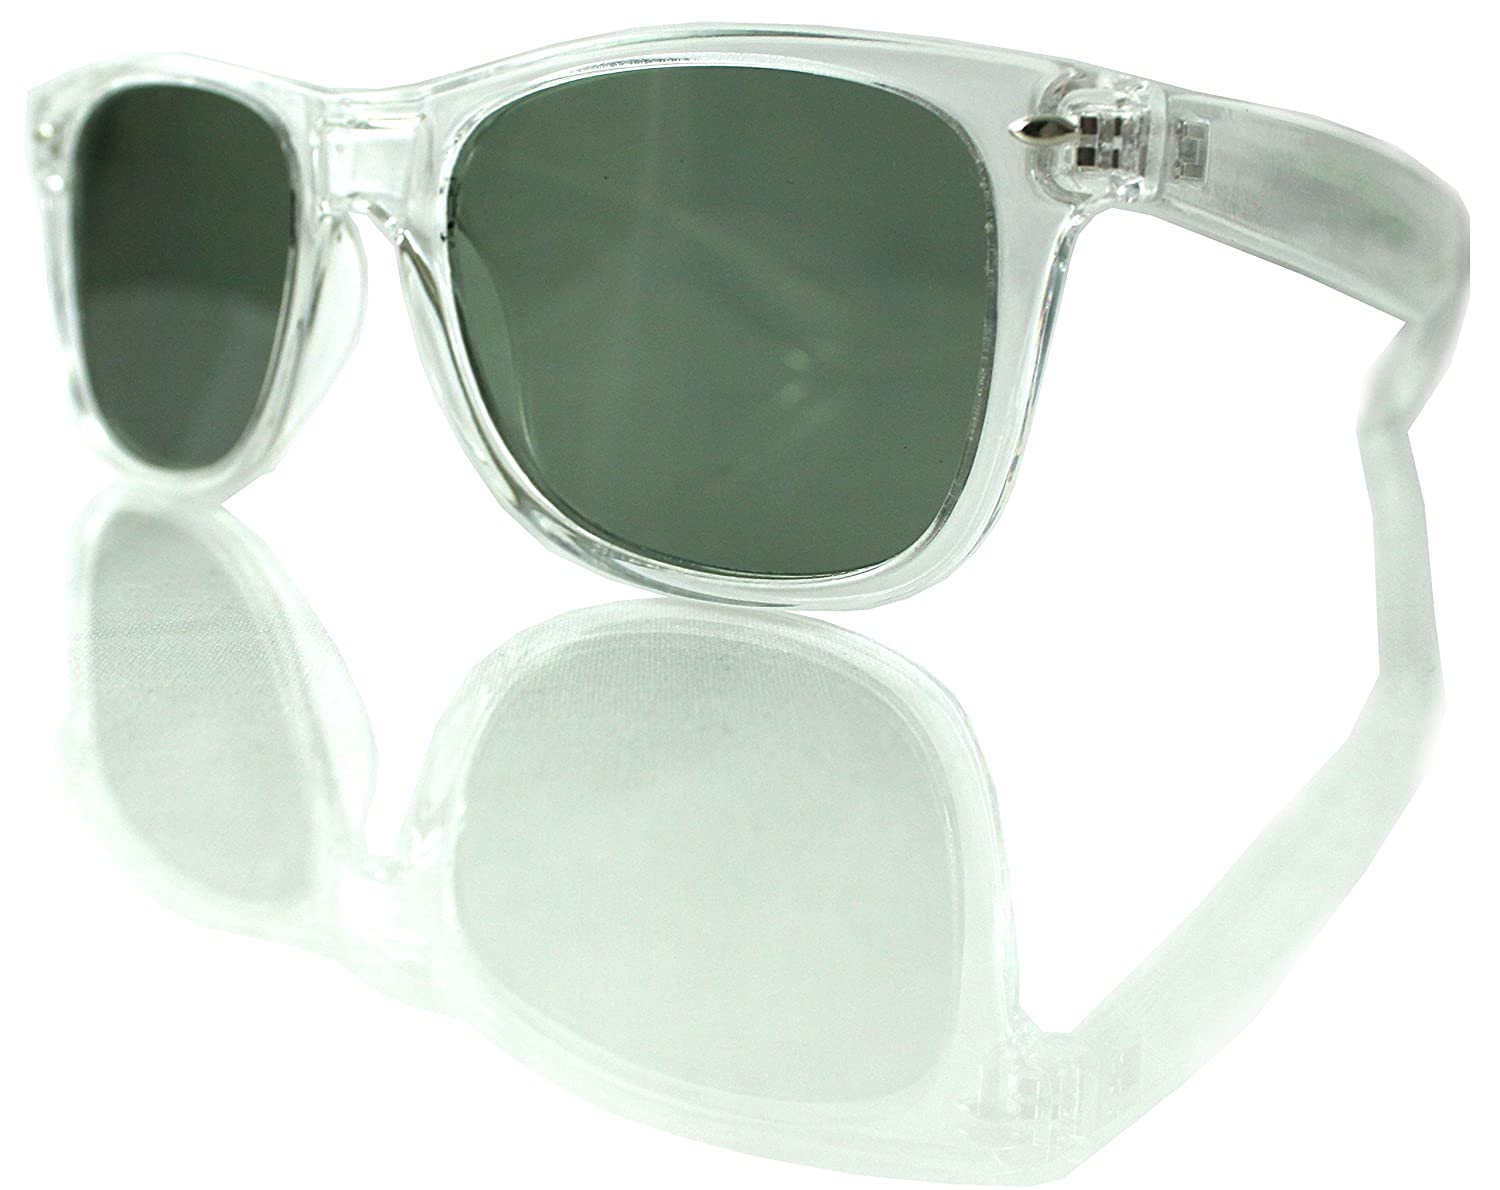 Transparent Clear Ultra Emerald Diffraction Glasses - Rave Glasses - Prism Shades - Light Show Glass